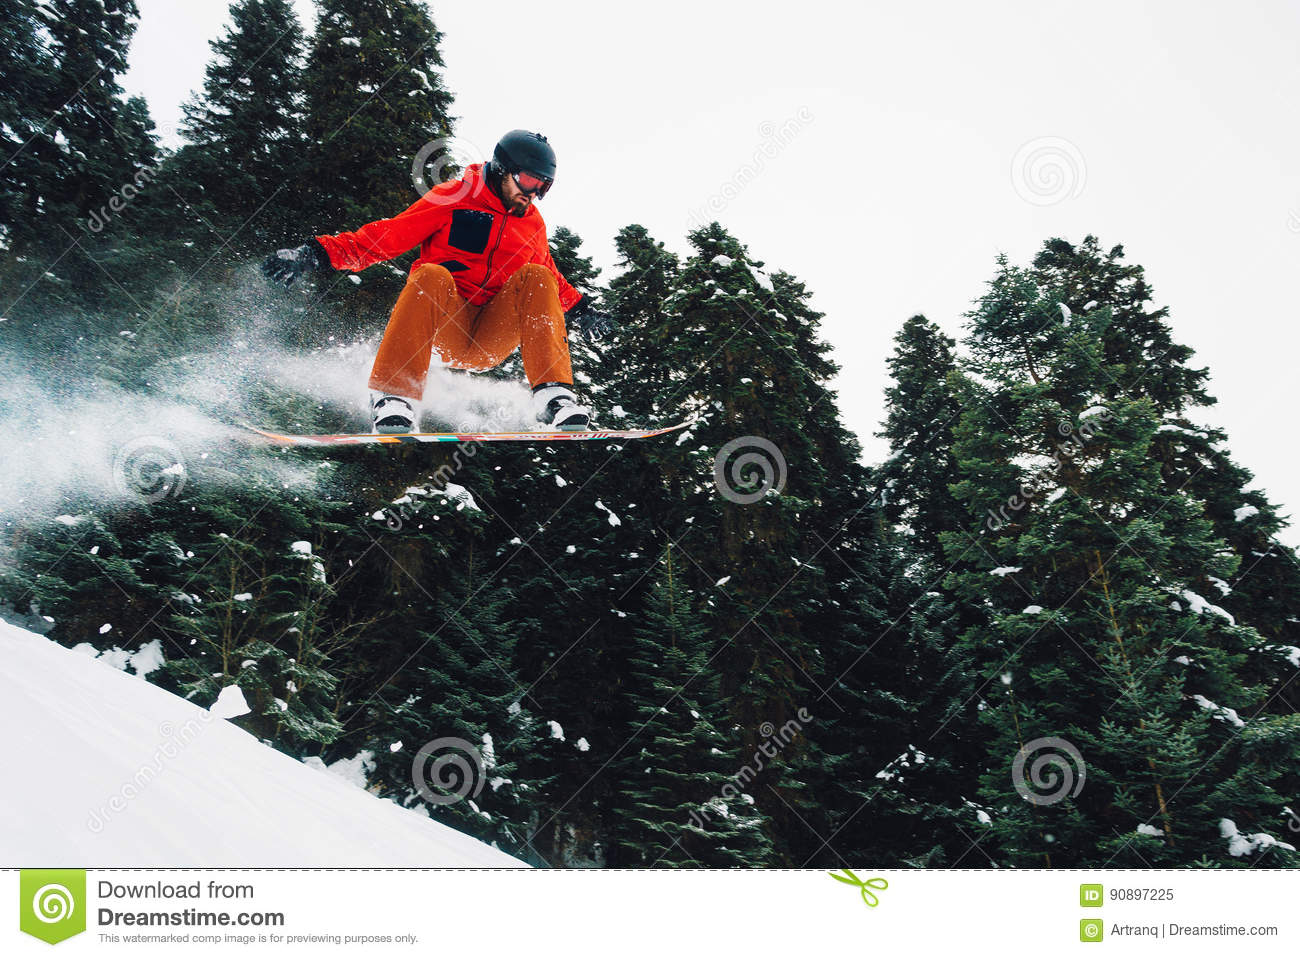 snowboarder is jumping very high and freeriding from hill in the